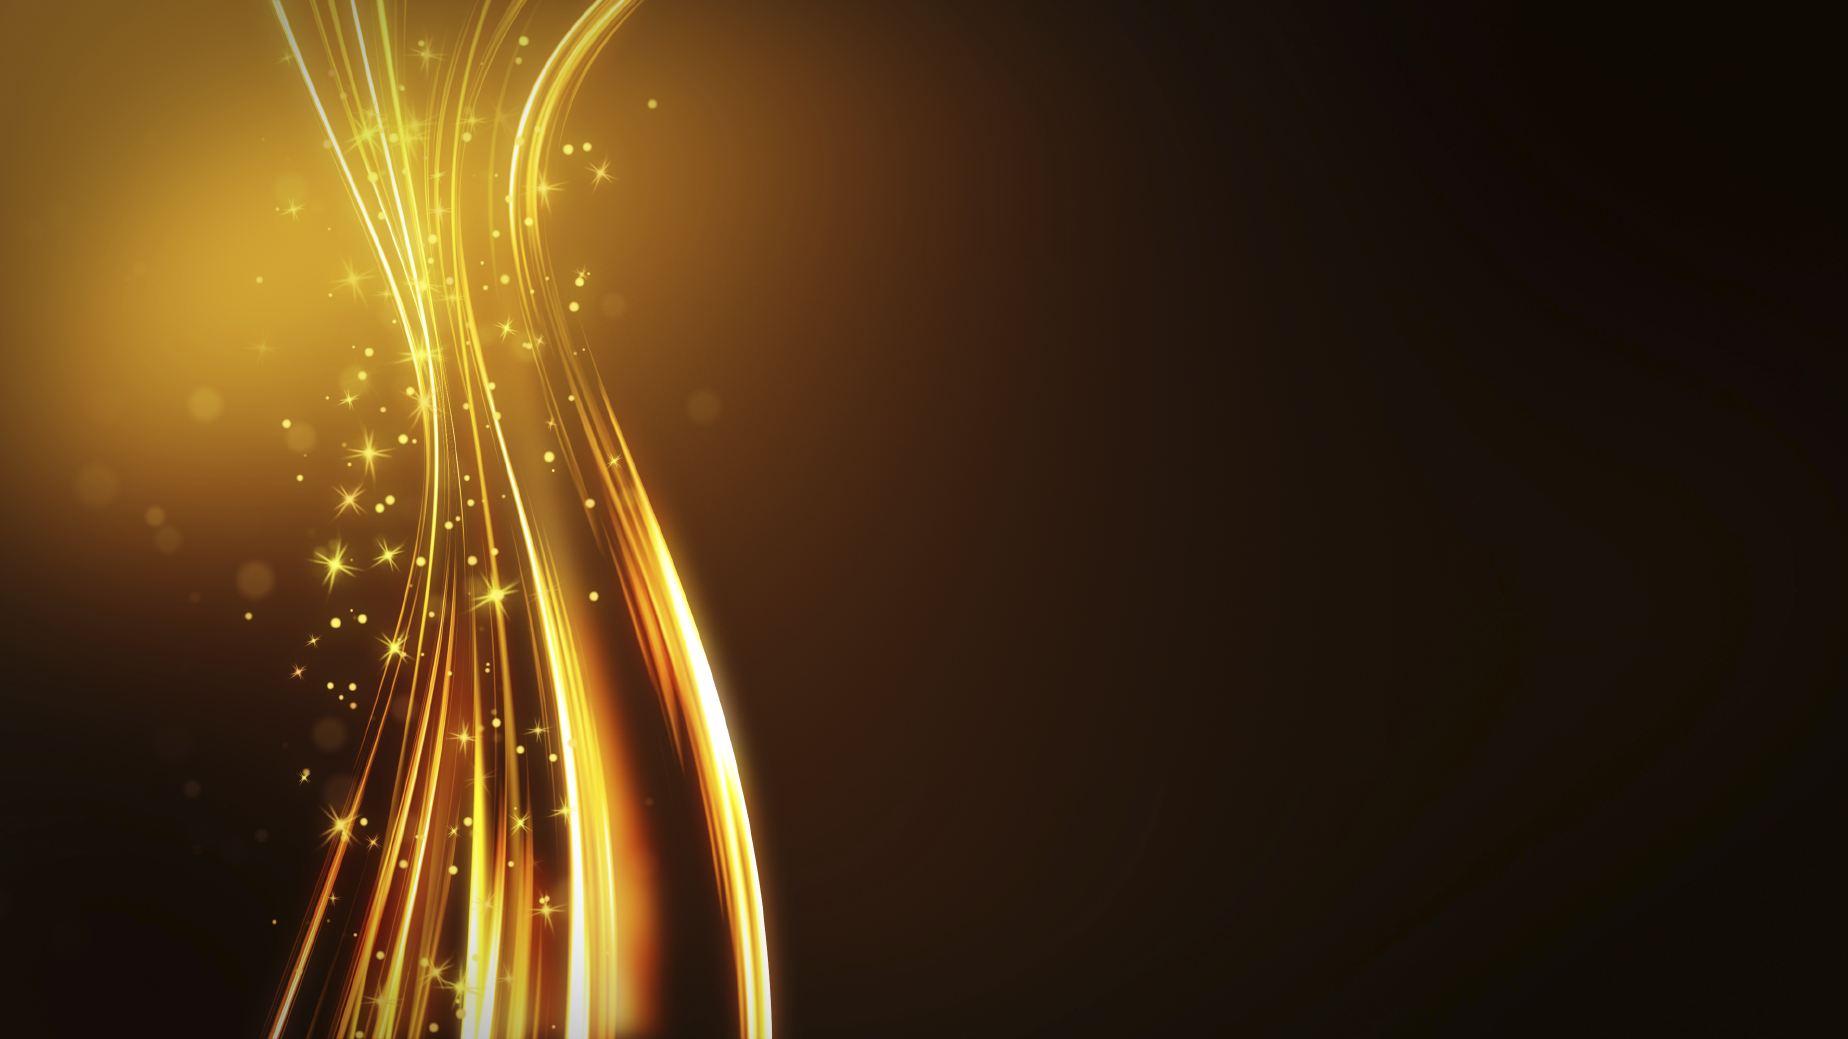 Black And Gold Abstract Wallpaper